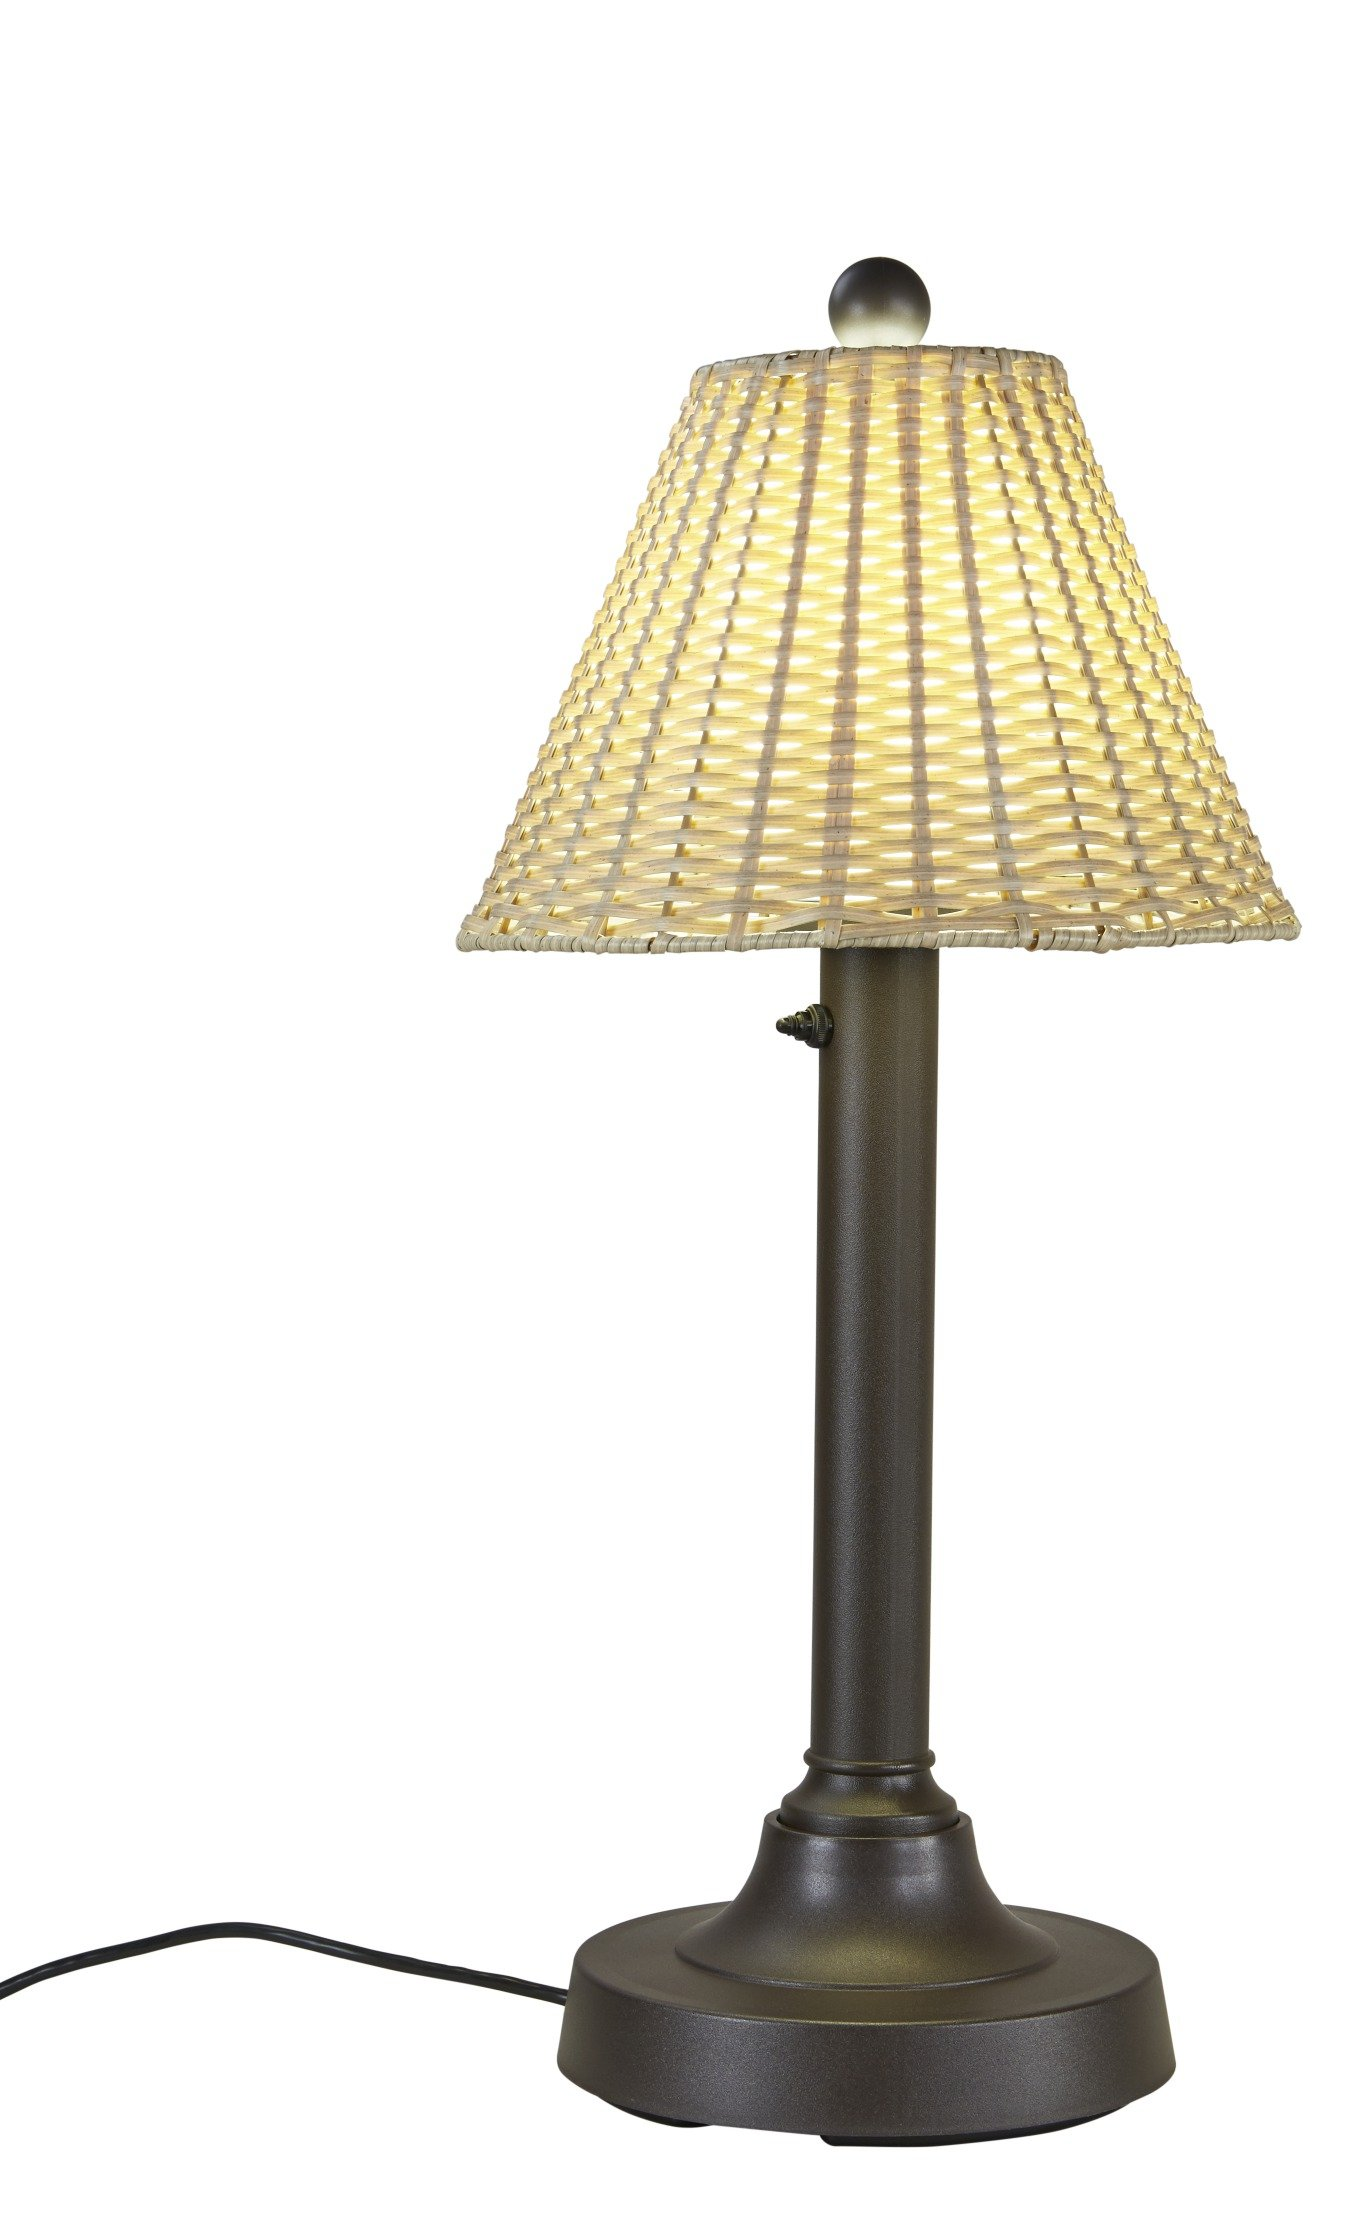 Patio Living Concepts 19227 Tahiti Outdoor Table Lamp with 2'' Tubular Body, 30'' by Patio Living Concepts